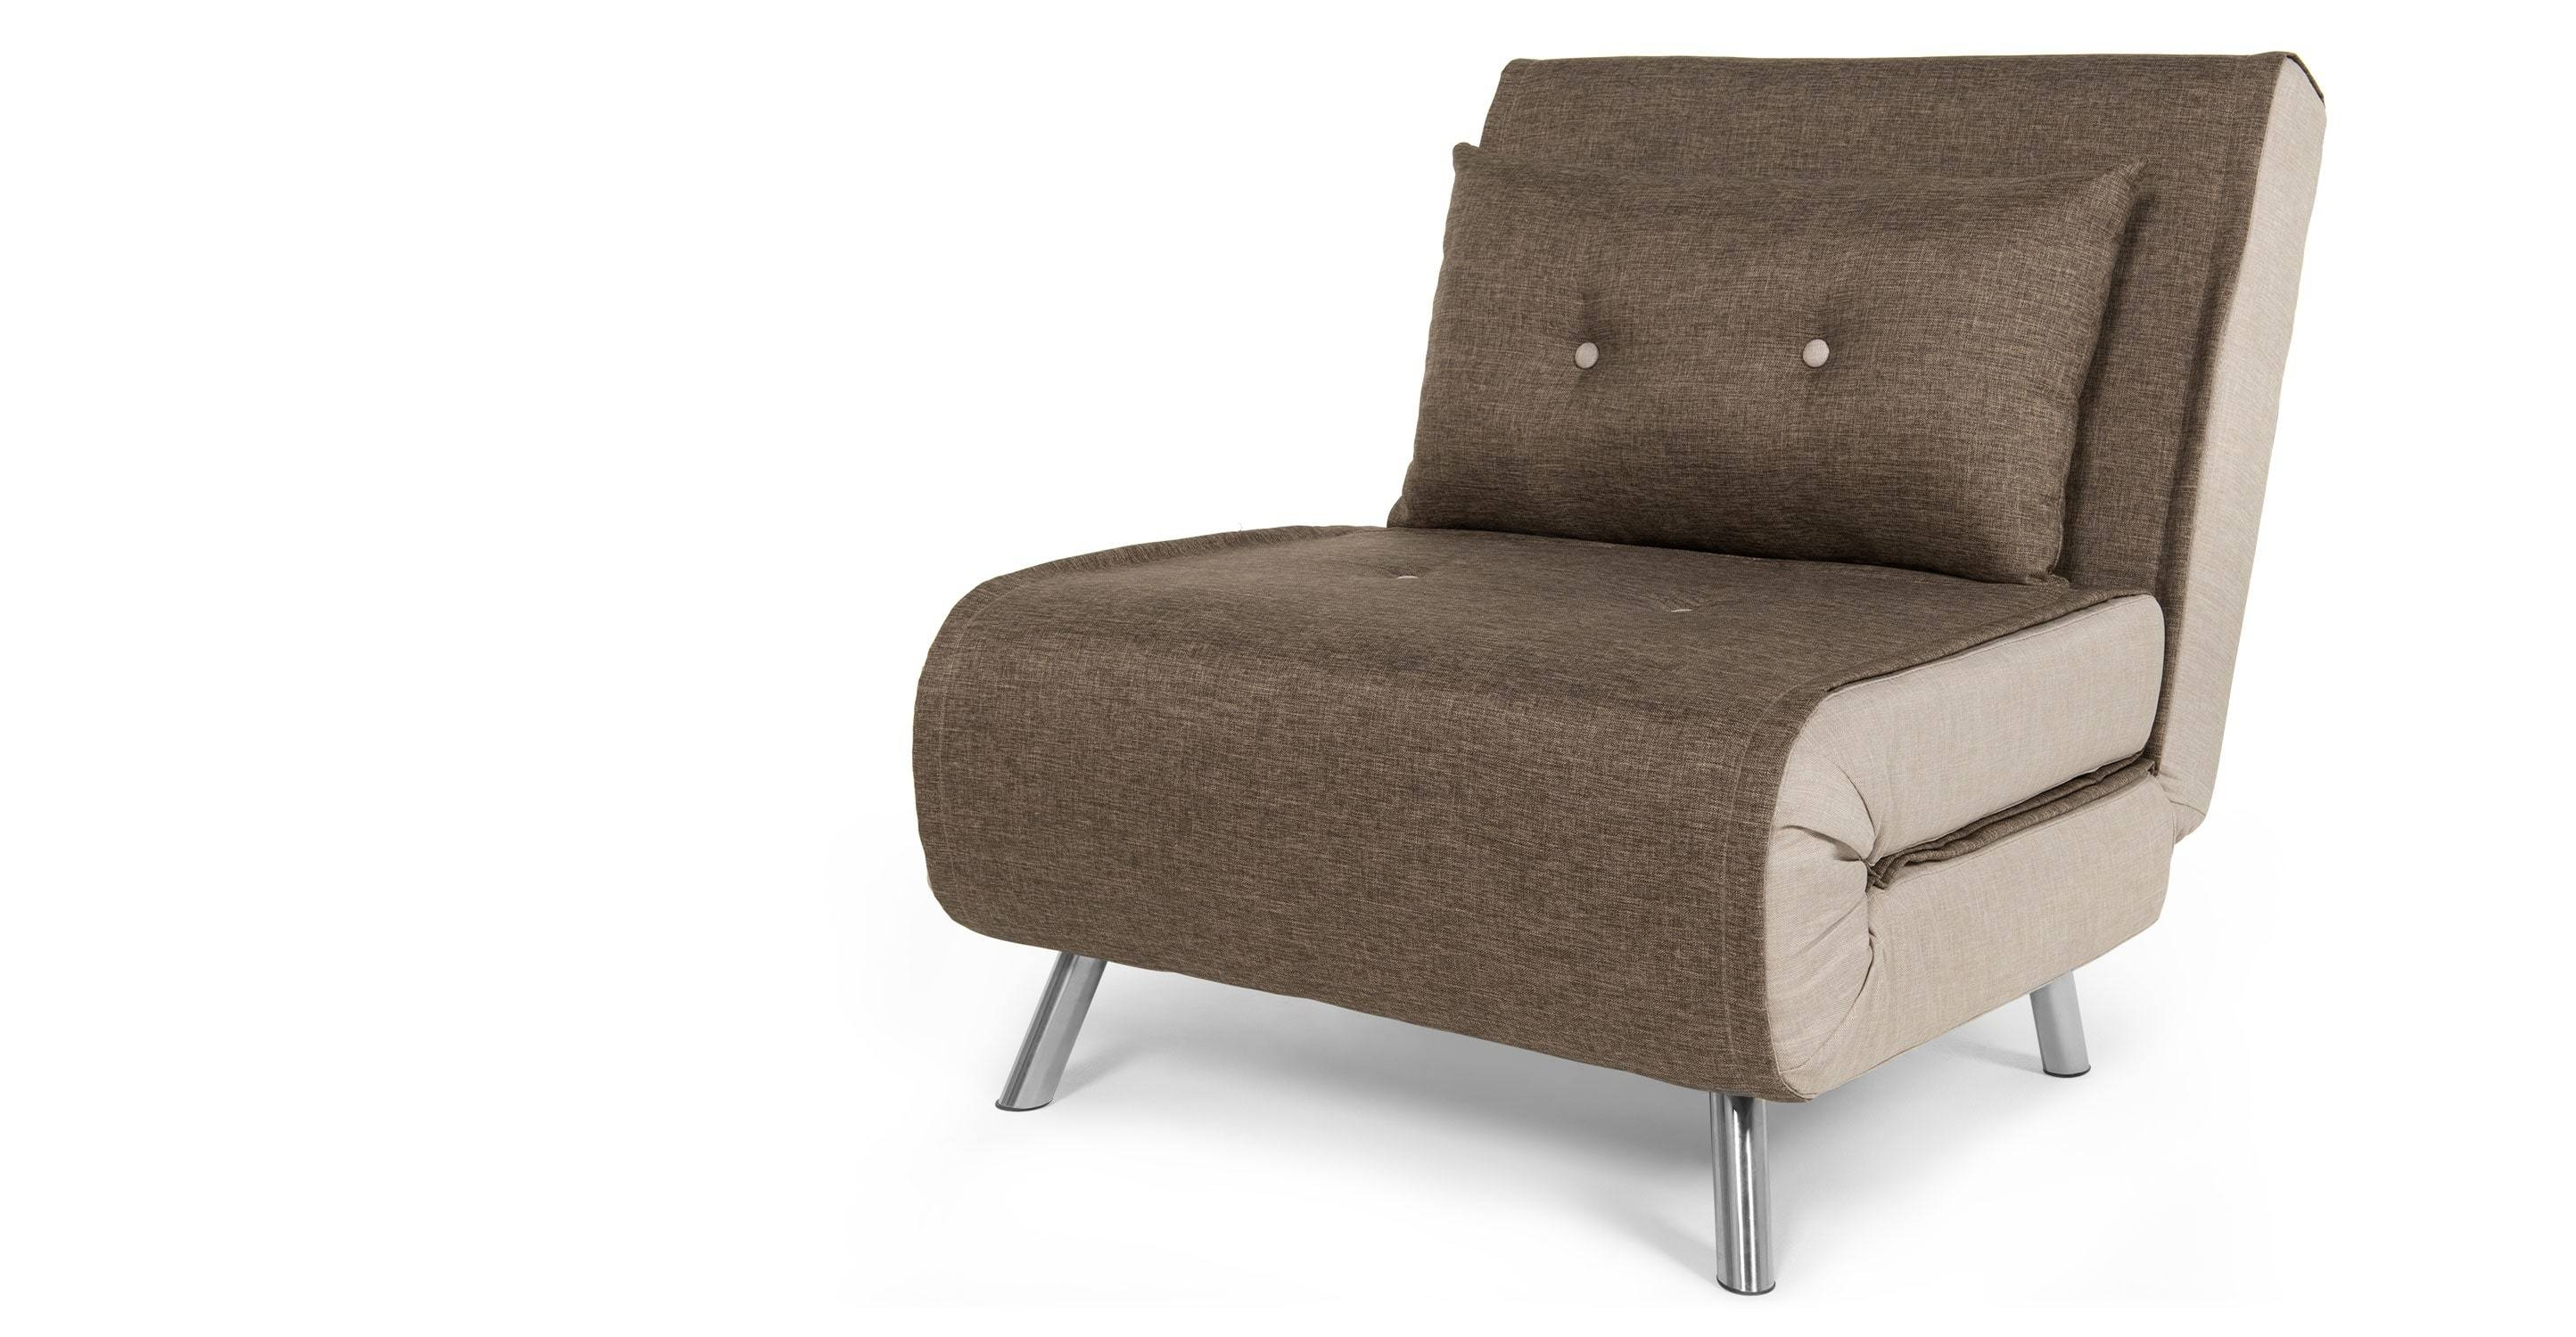 Sofas Center : Frightening Chair Sofa Photos Ideas Ikea Single inside Single Chair Sofa Beds (Image 26 of 30)